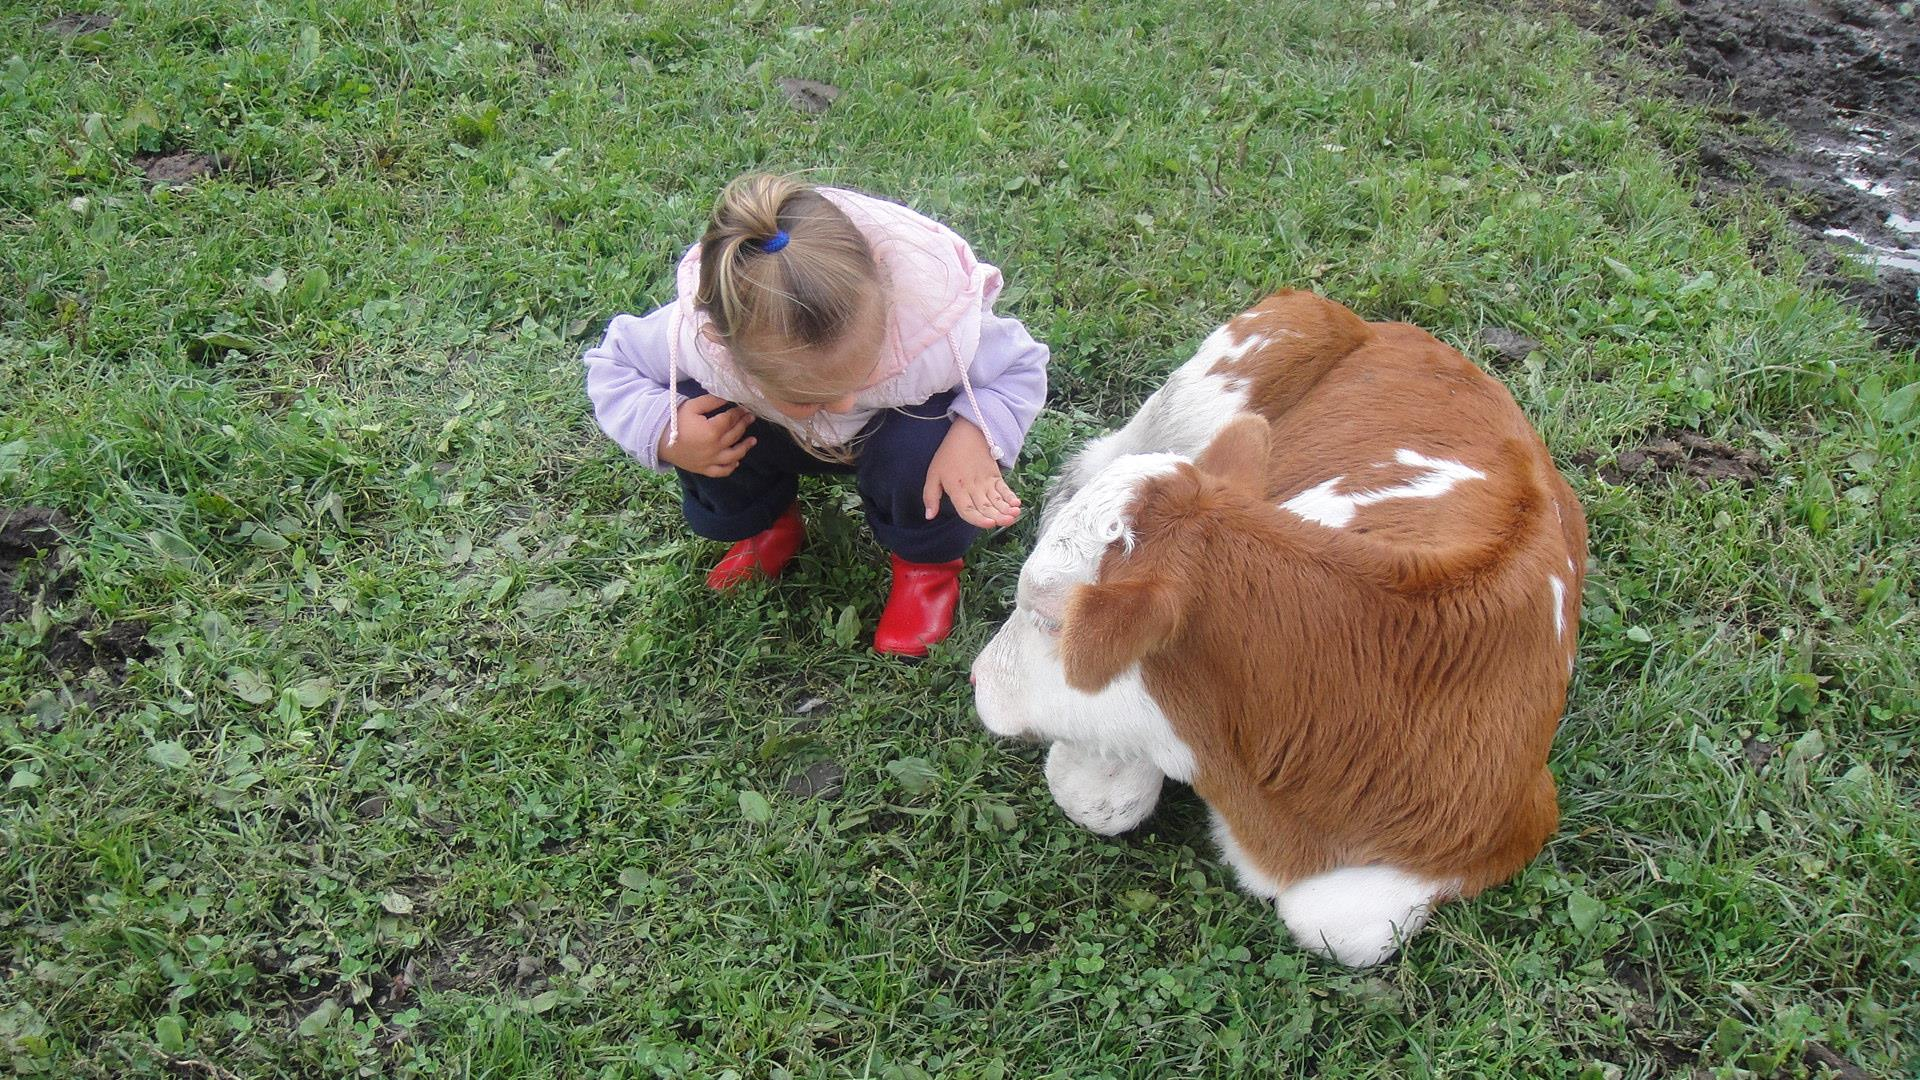 Lena with cow